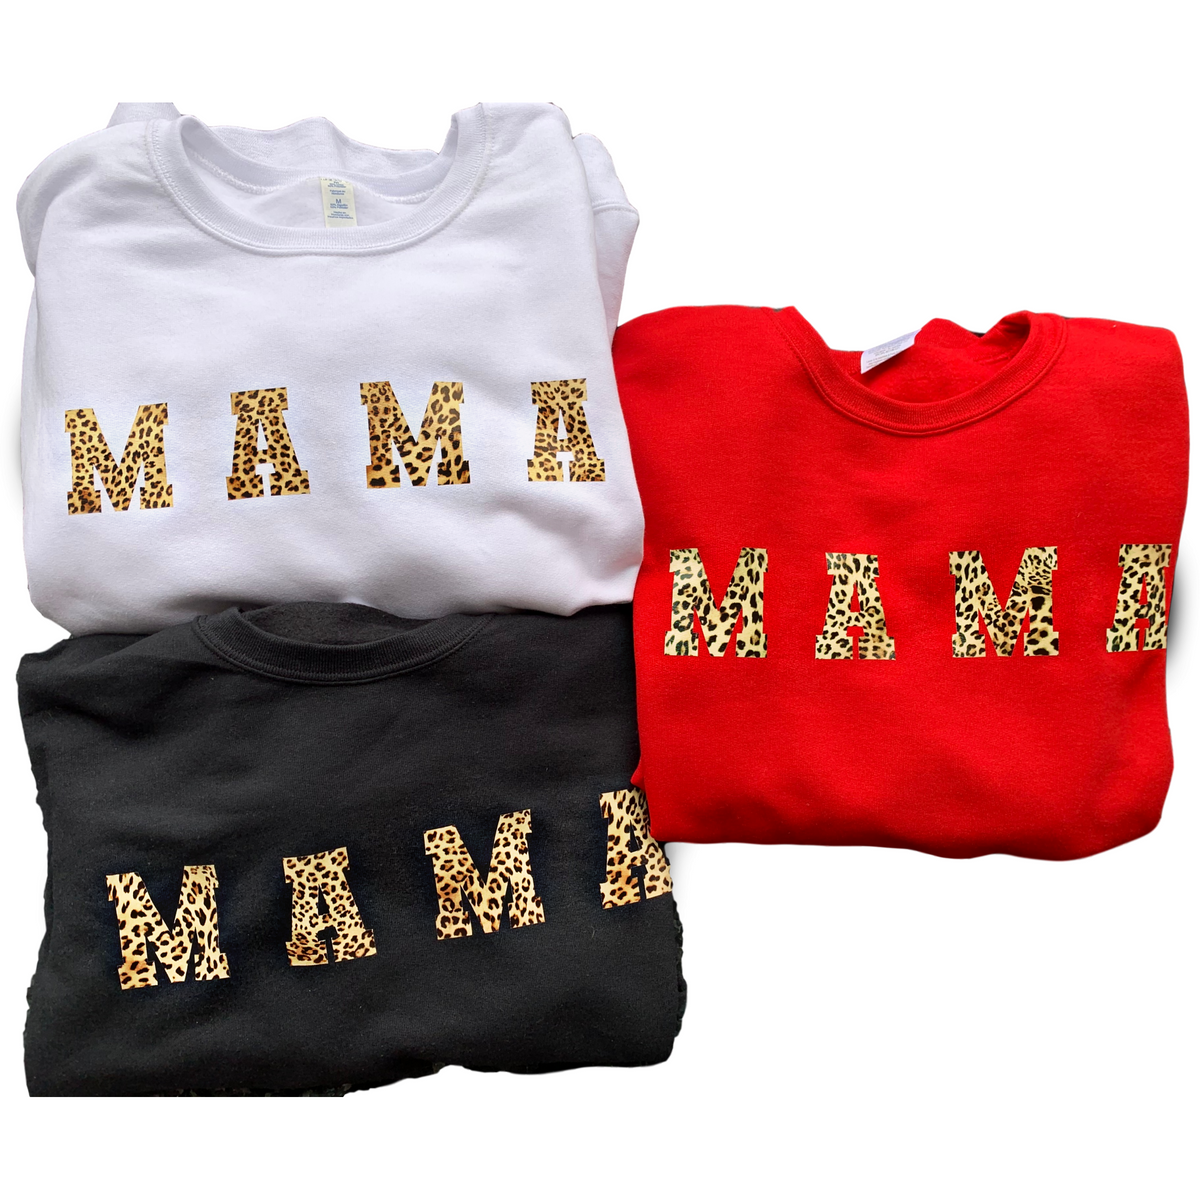 Wild Mama sweatshirt (more colors)